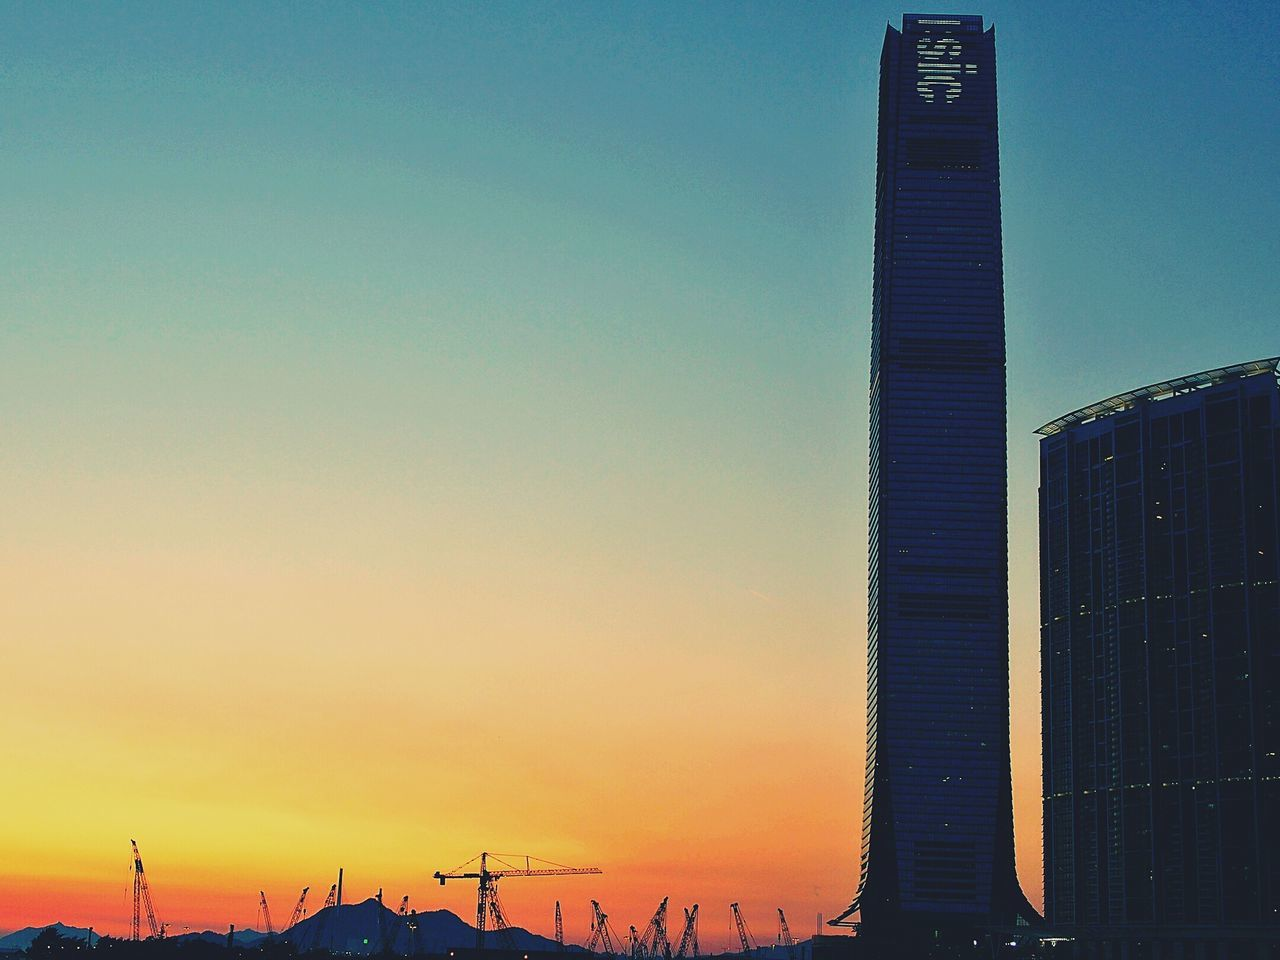 Sky 100 HongKong Landmark In Sunset